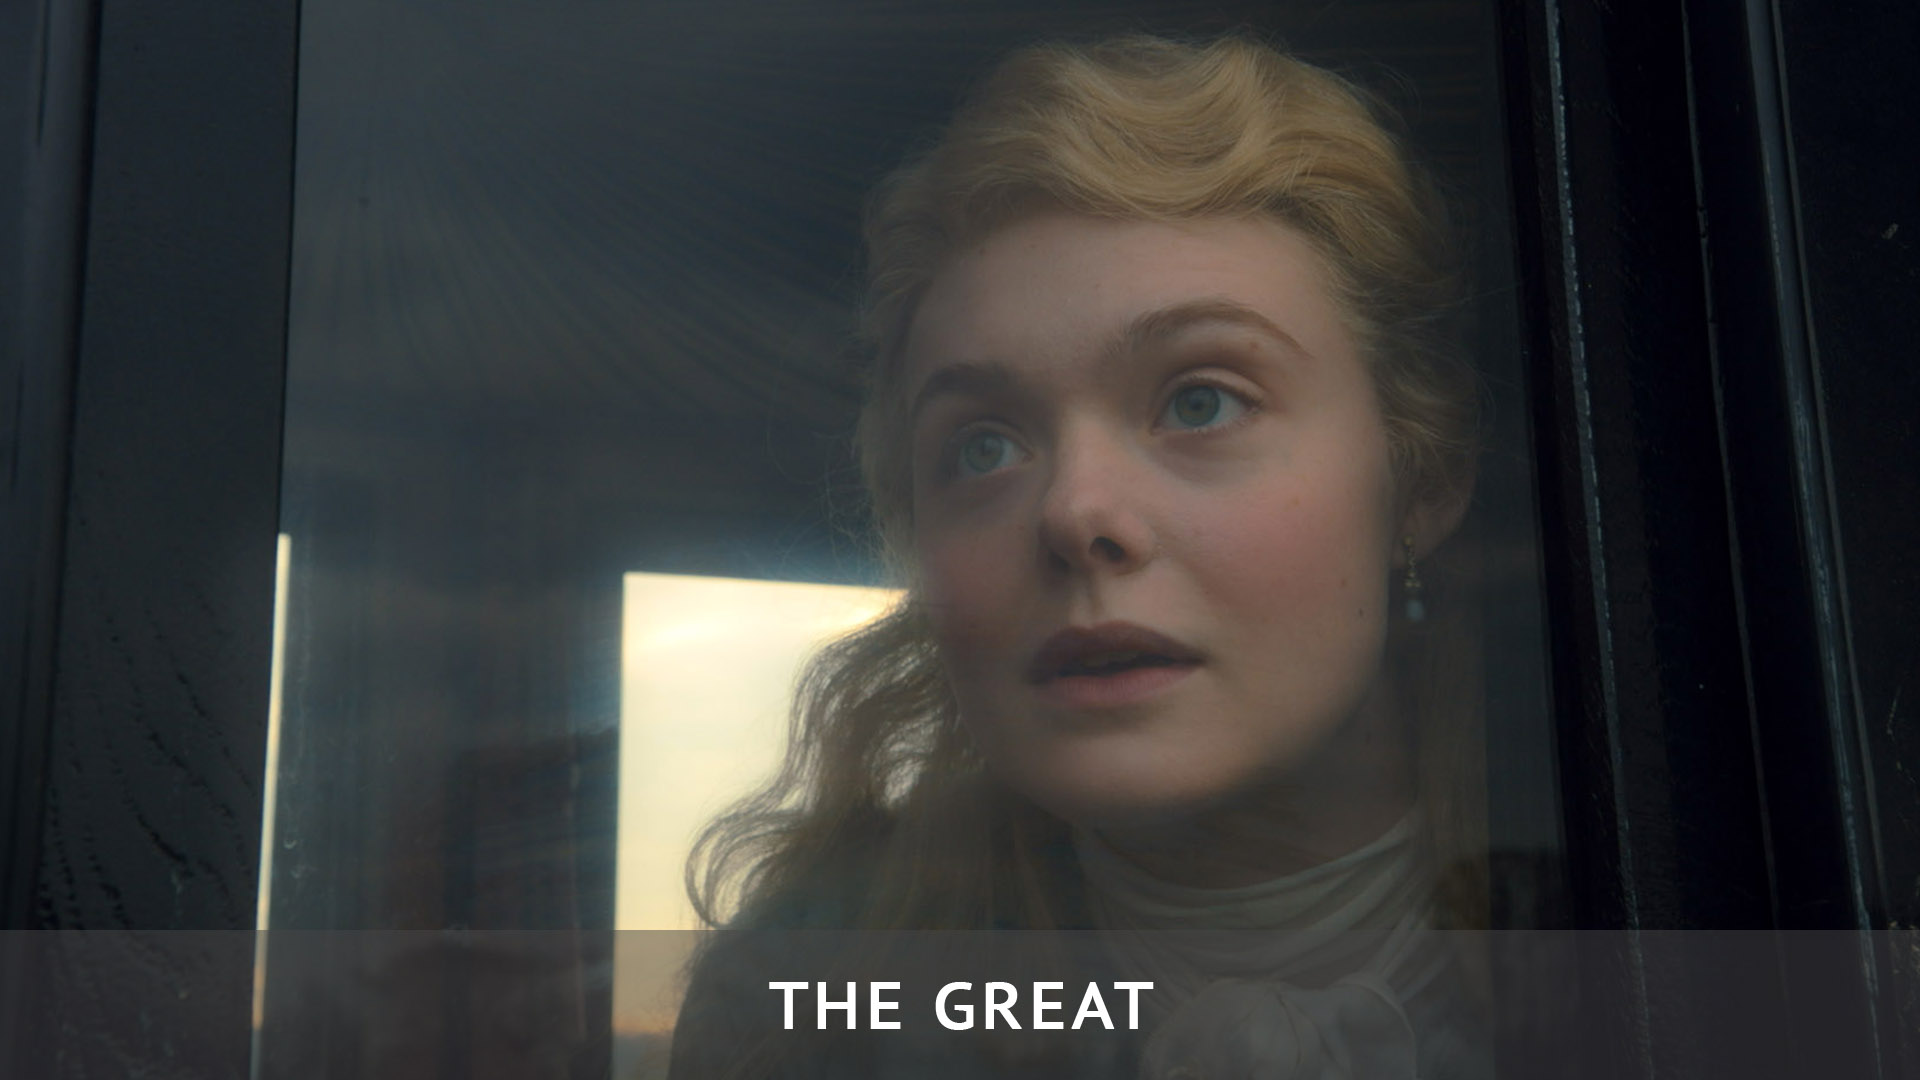 The Great - Color Grading / Post Production